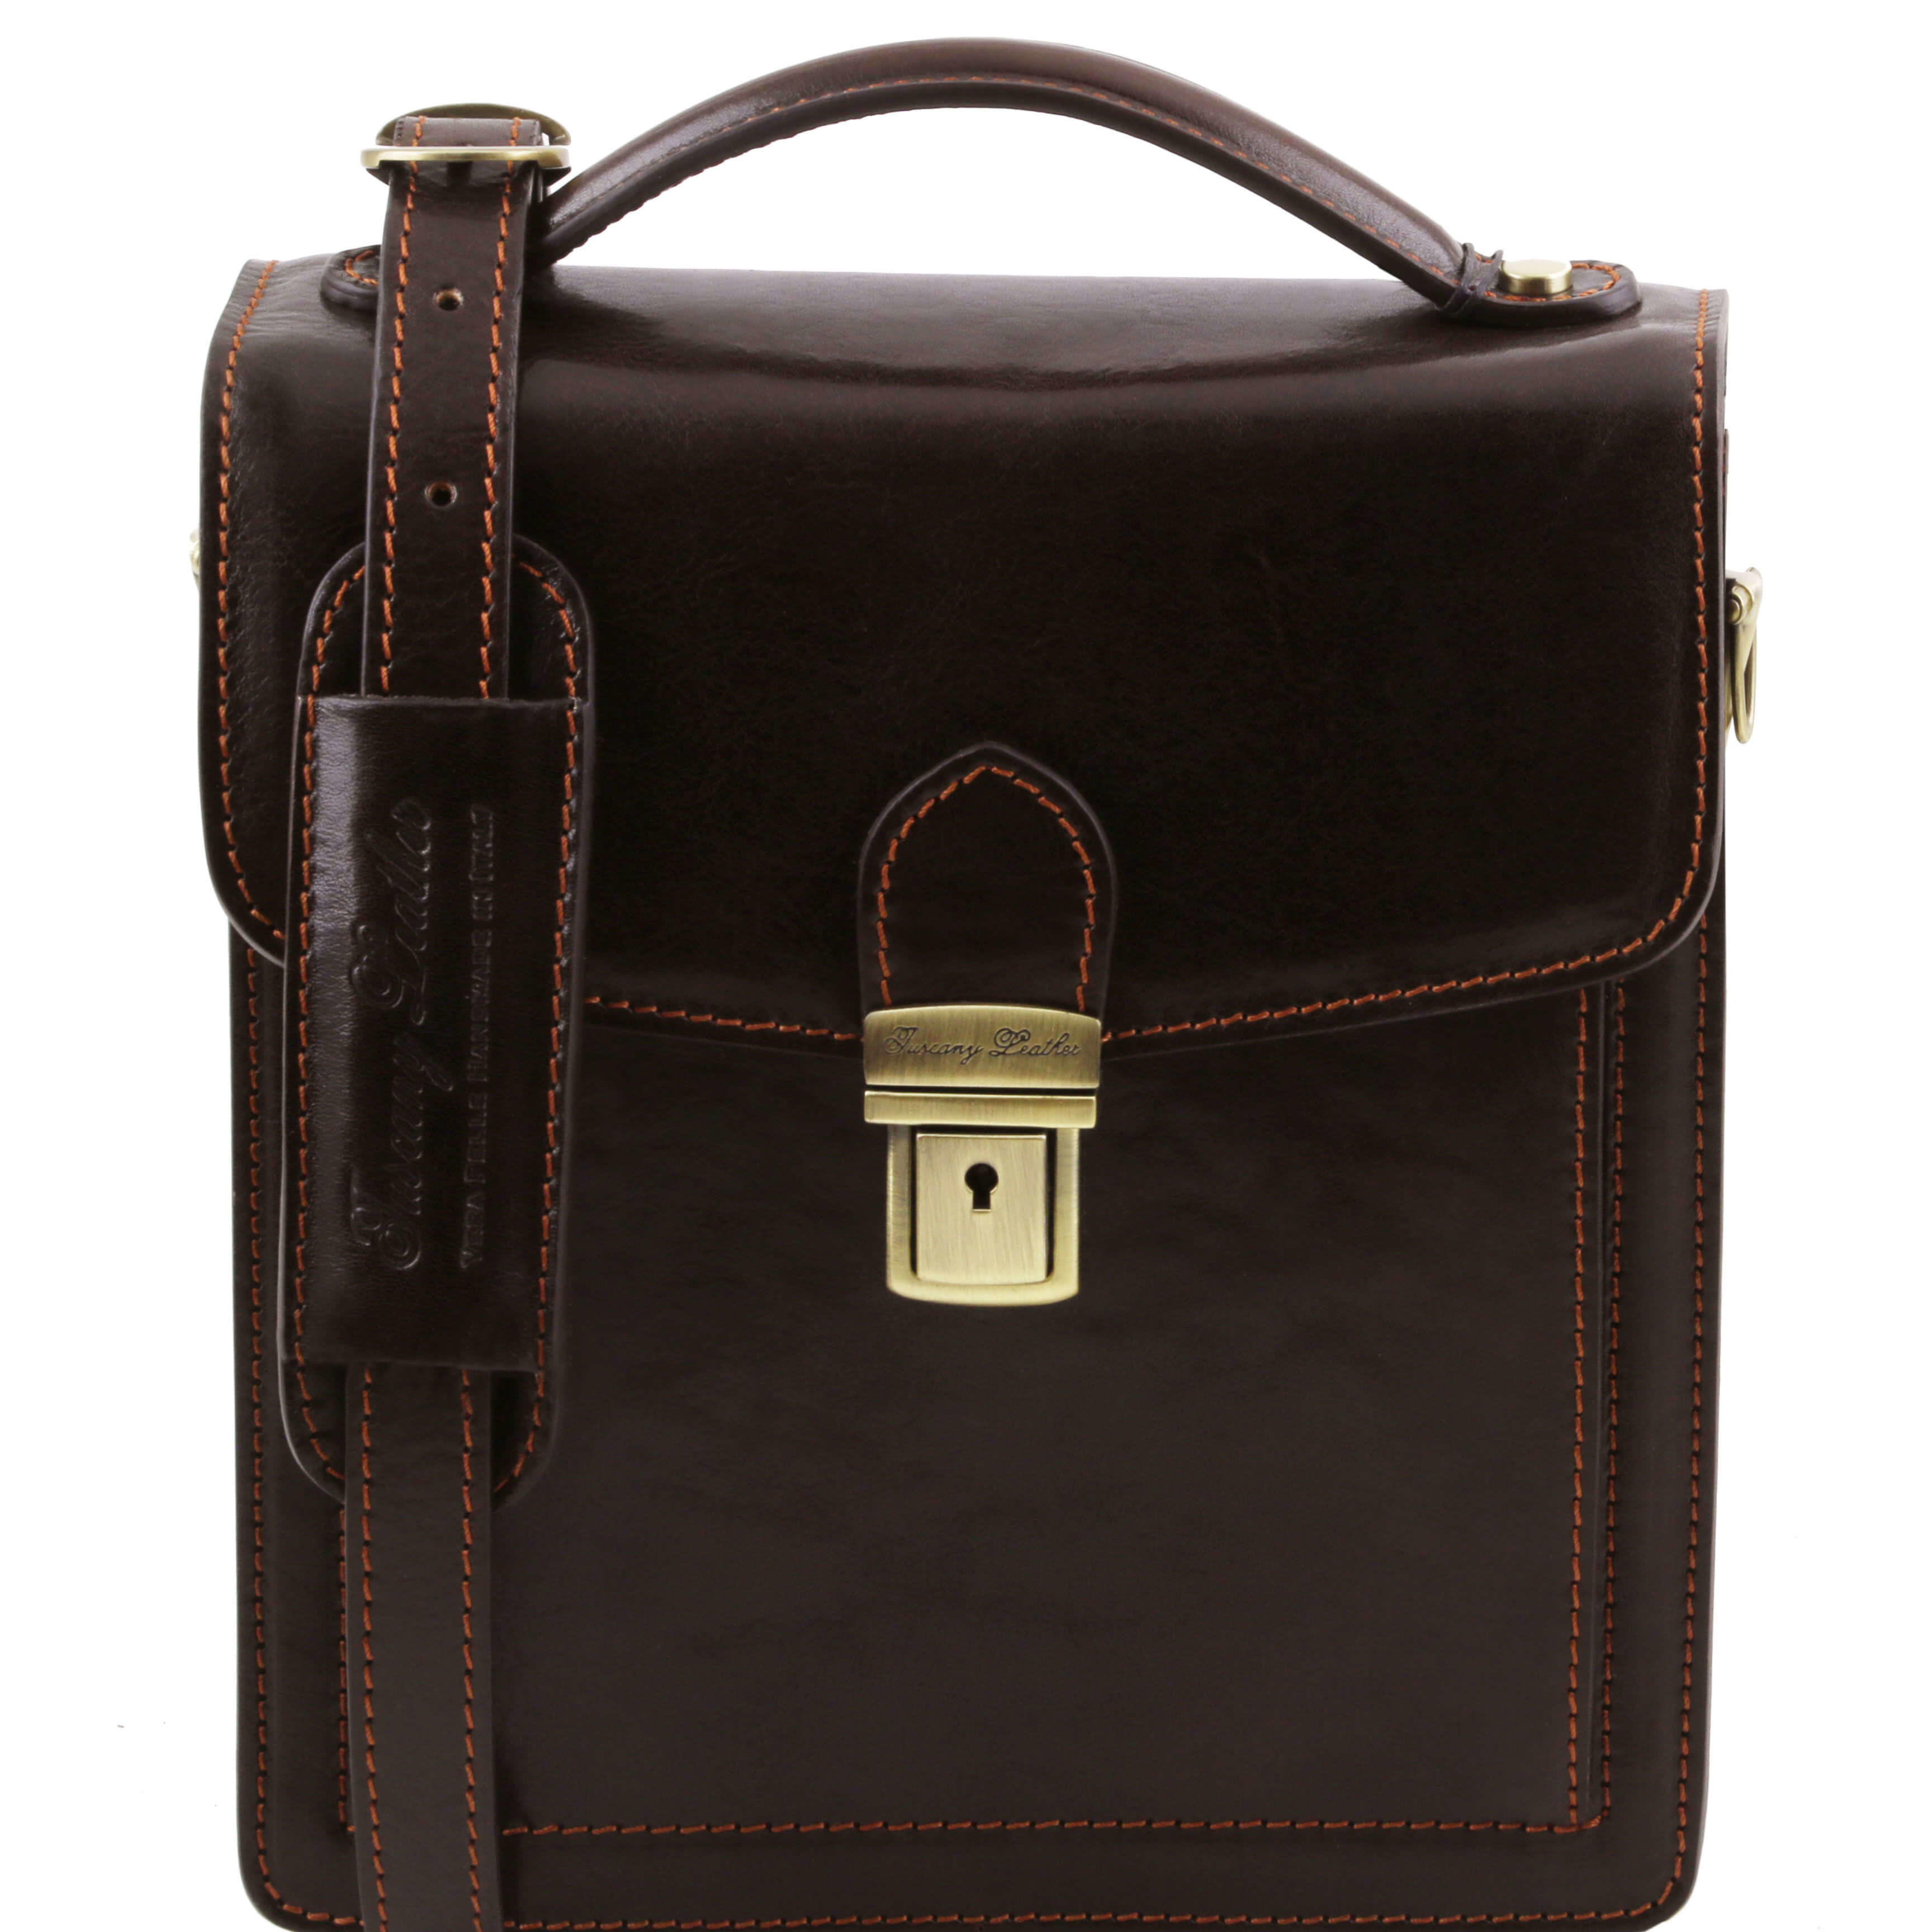 TL141425 New David Mens Shoulder-Saddle-Clutch-Man Bag 4 Colours+Shoulder Strap In Dark Brown